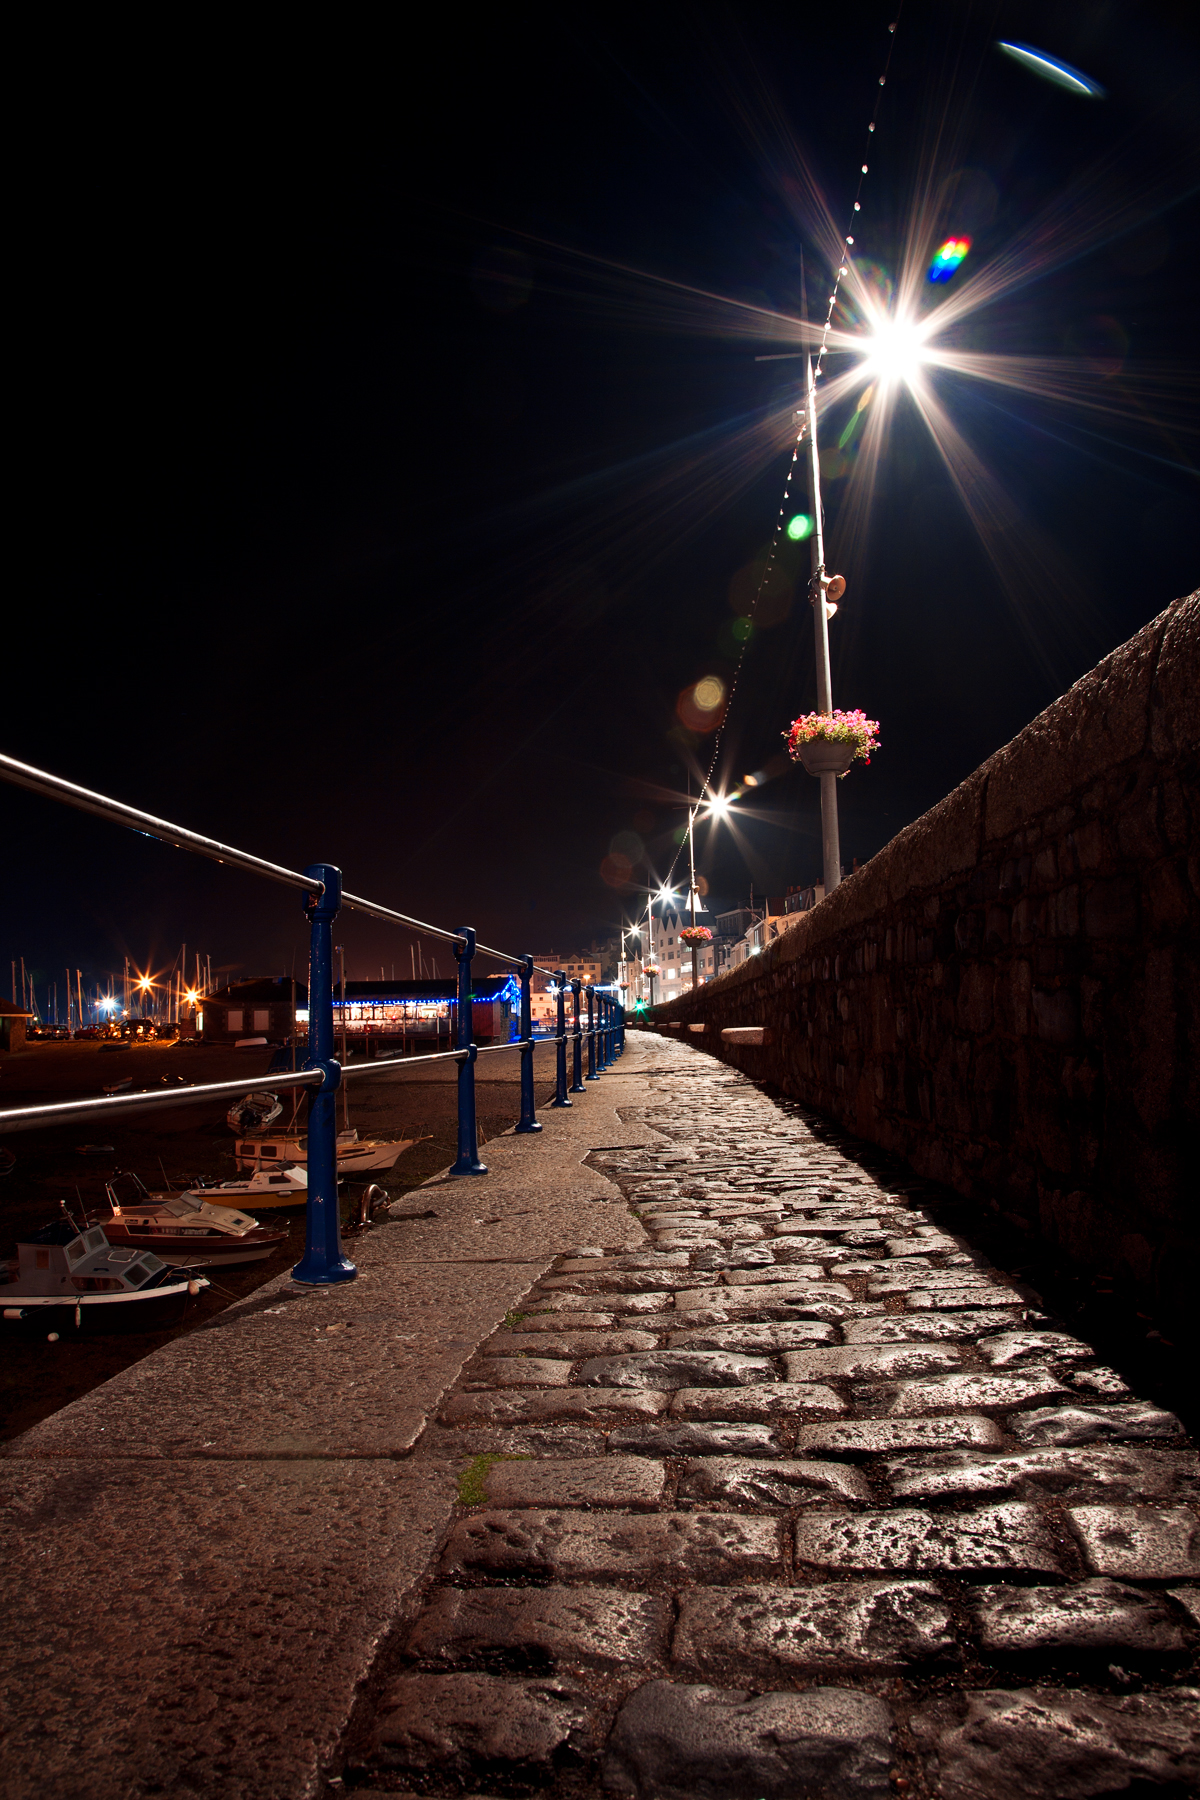 Guernsey Night Path, Alley, Perspective, Shiney, Shine, HQ Photo